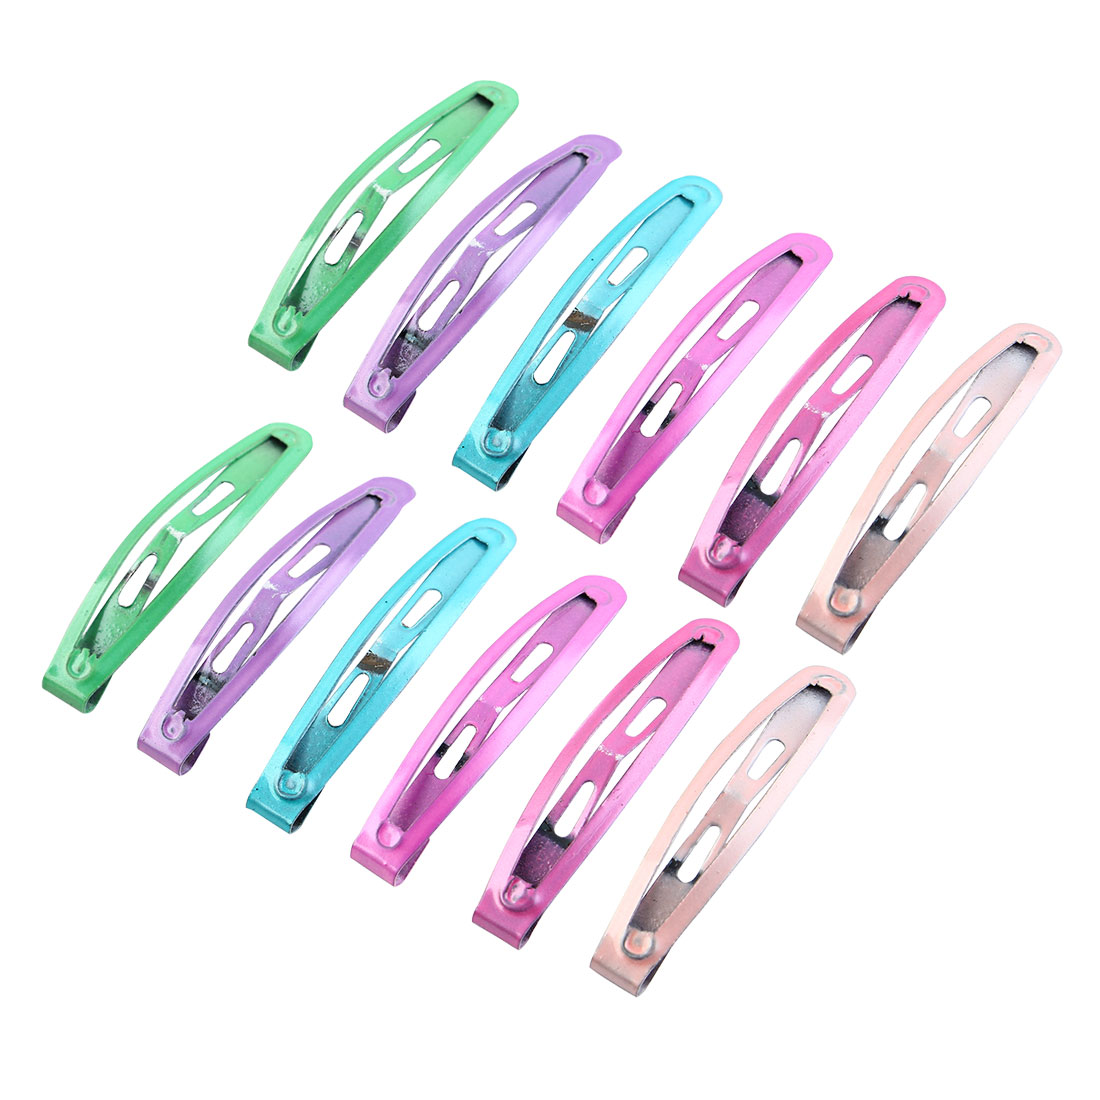 "12 Pcs 1.7"" Metal 6 Colors Snap Bendy Hair Clips Bow Prongs for Girls"